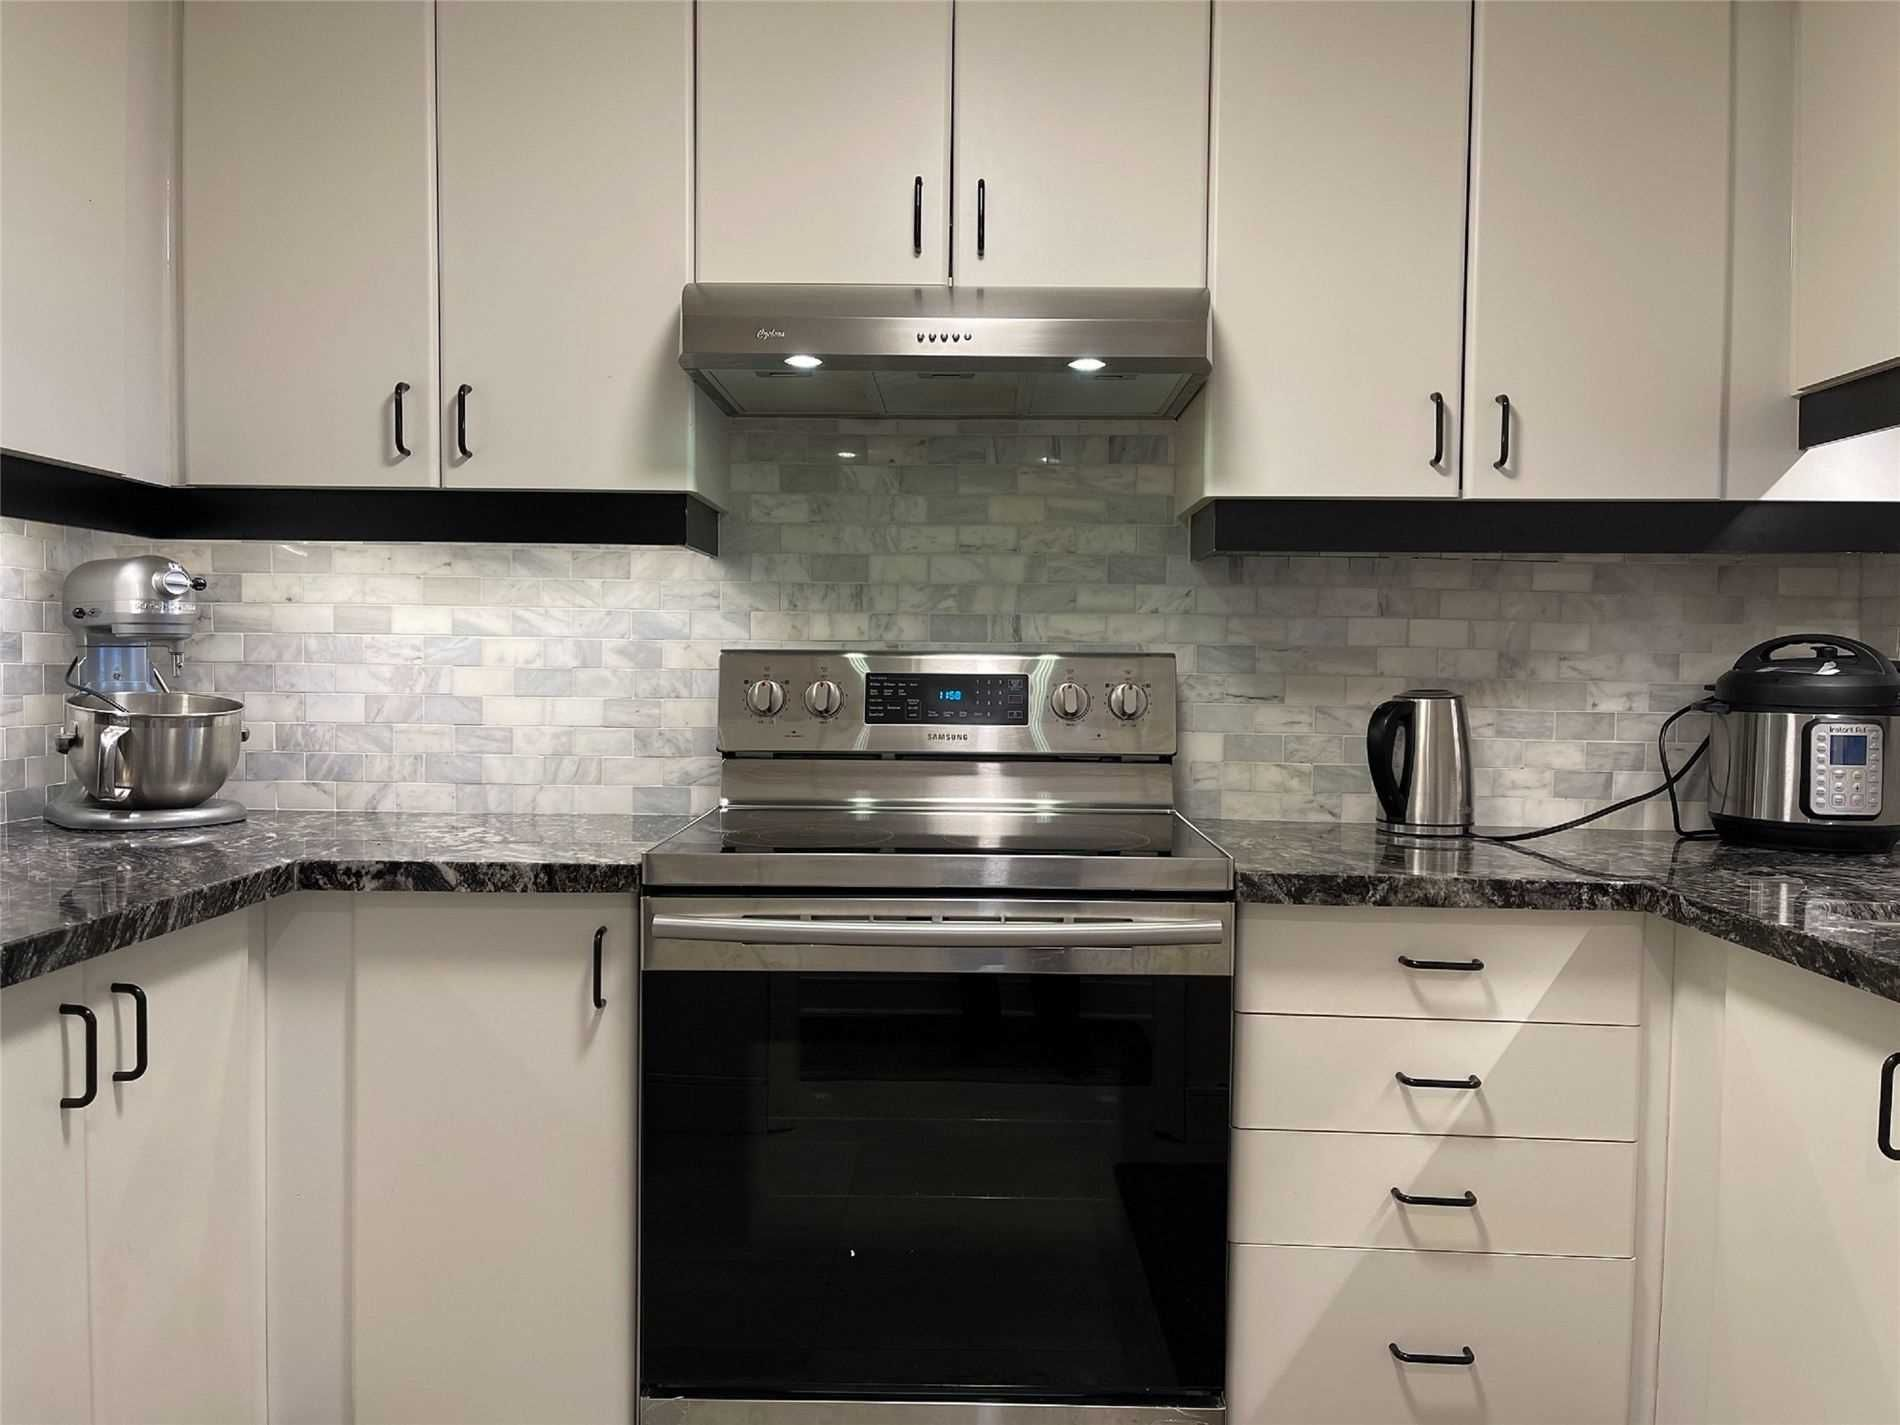 711 Bay St N, unit 1715 for rent in Toronto - image #2